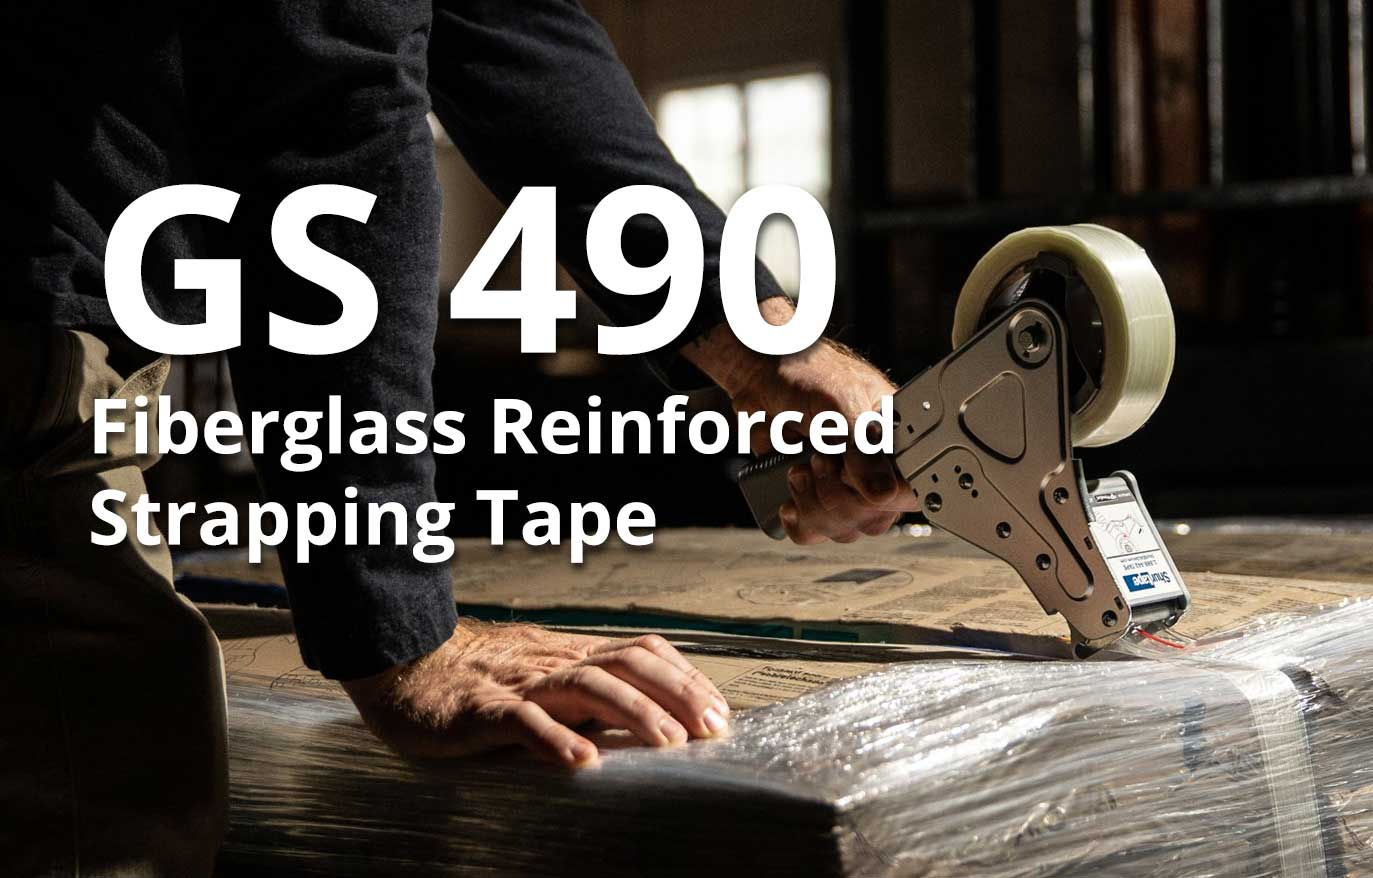 GS 490 Fiberglass Reinforced Strapping Tape